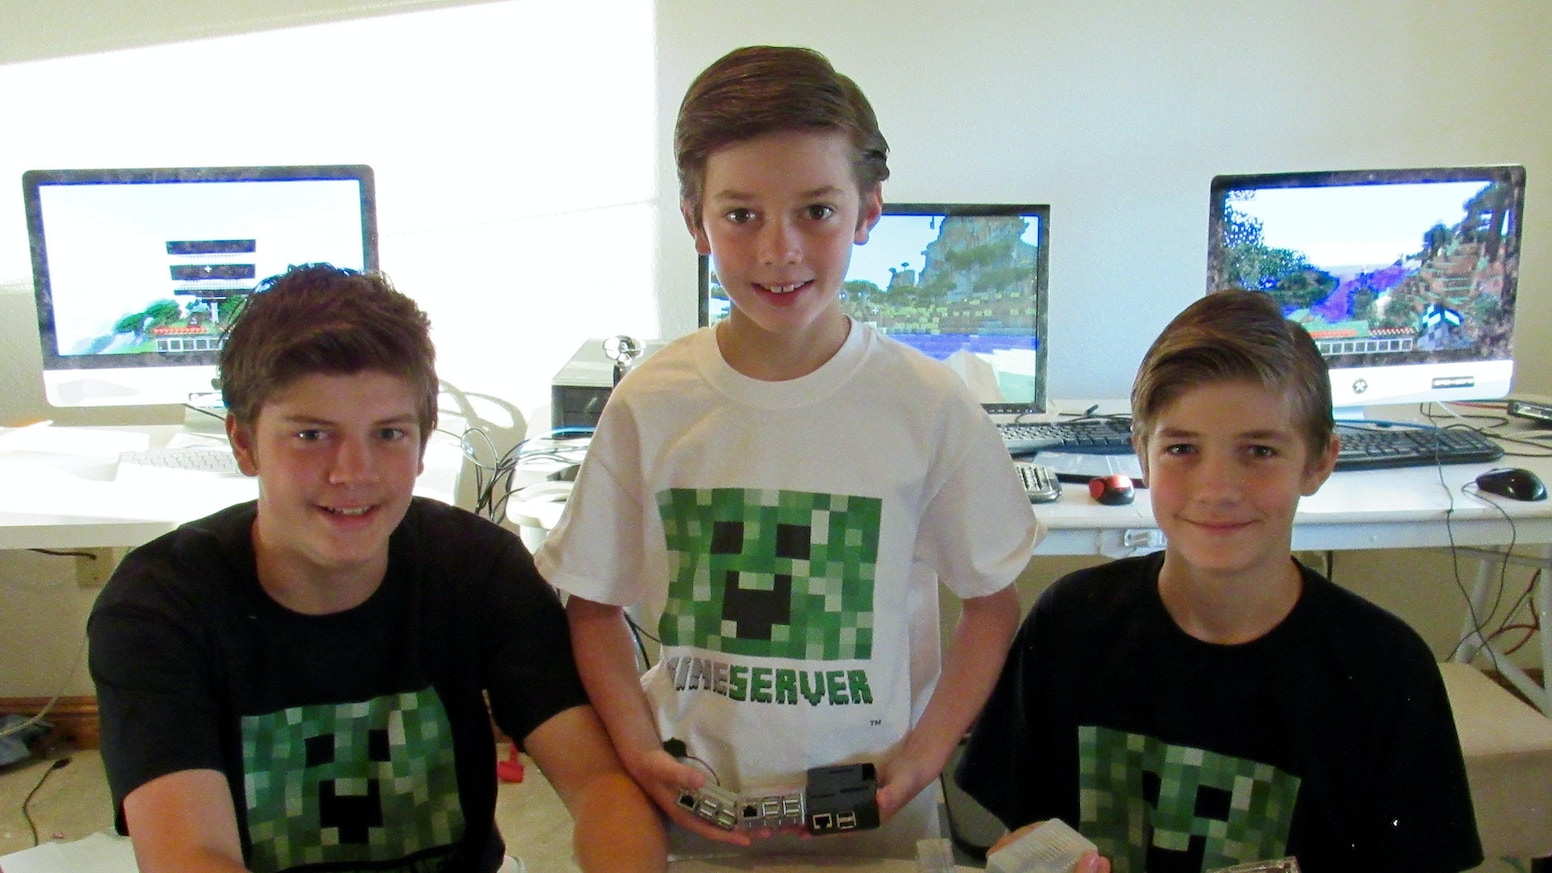 Mineserver™ -- A $99 Home Minecraft Server by Mineserver LLC